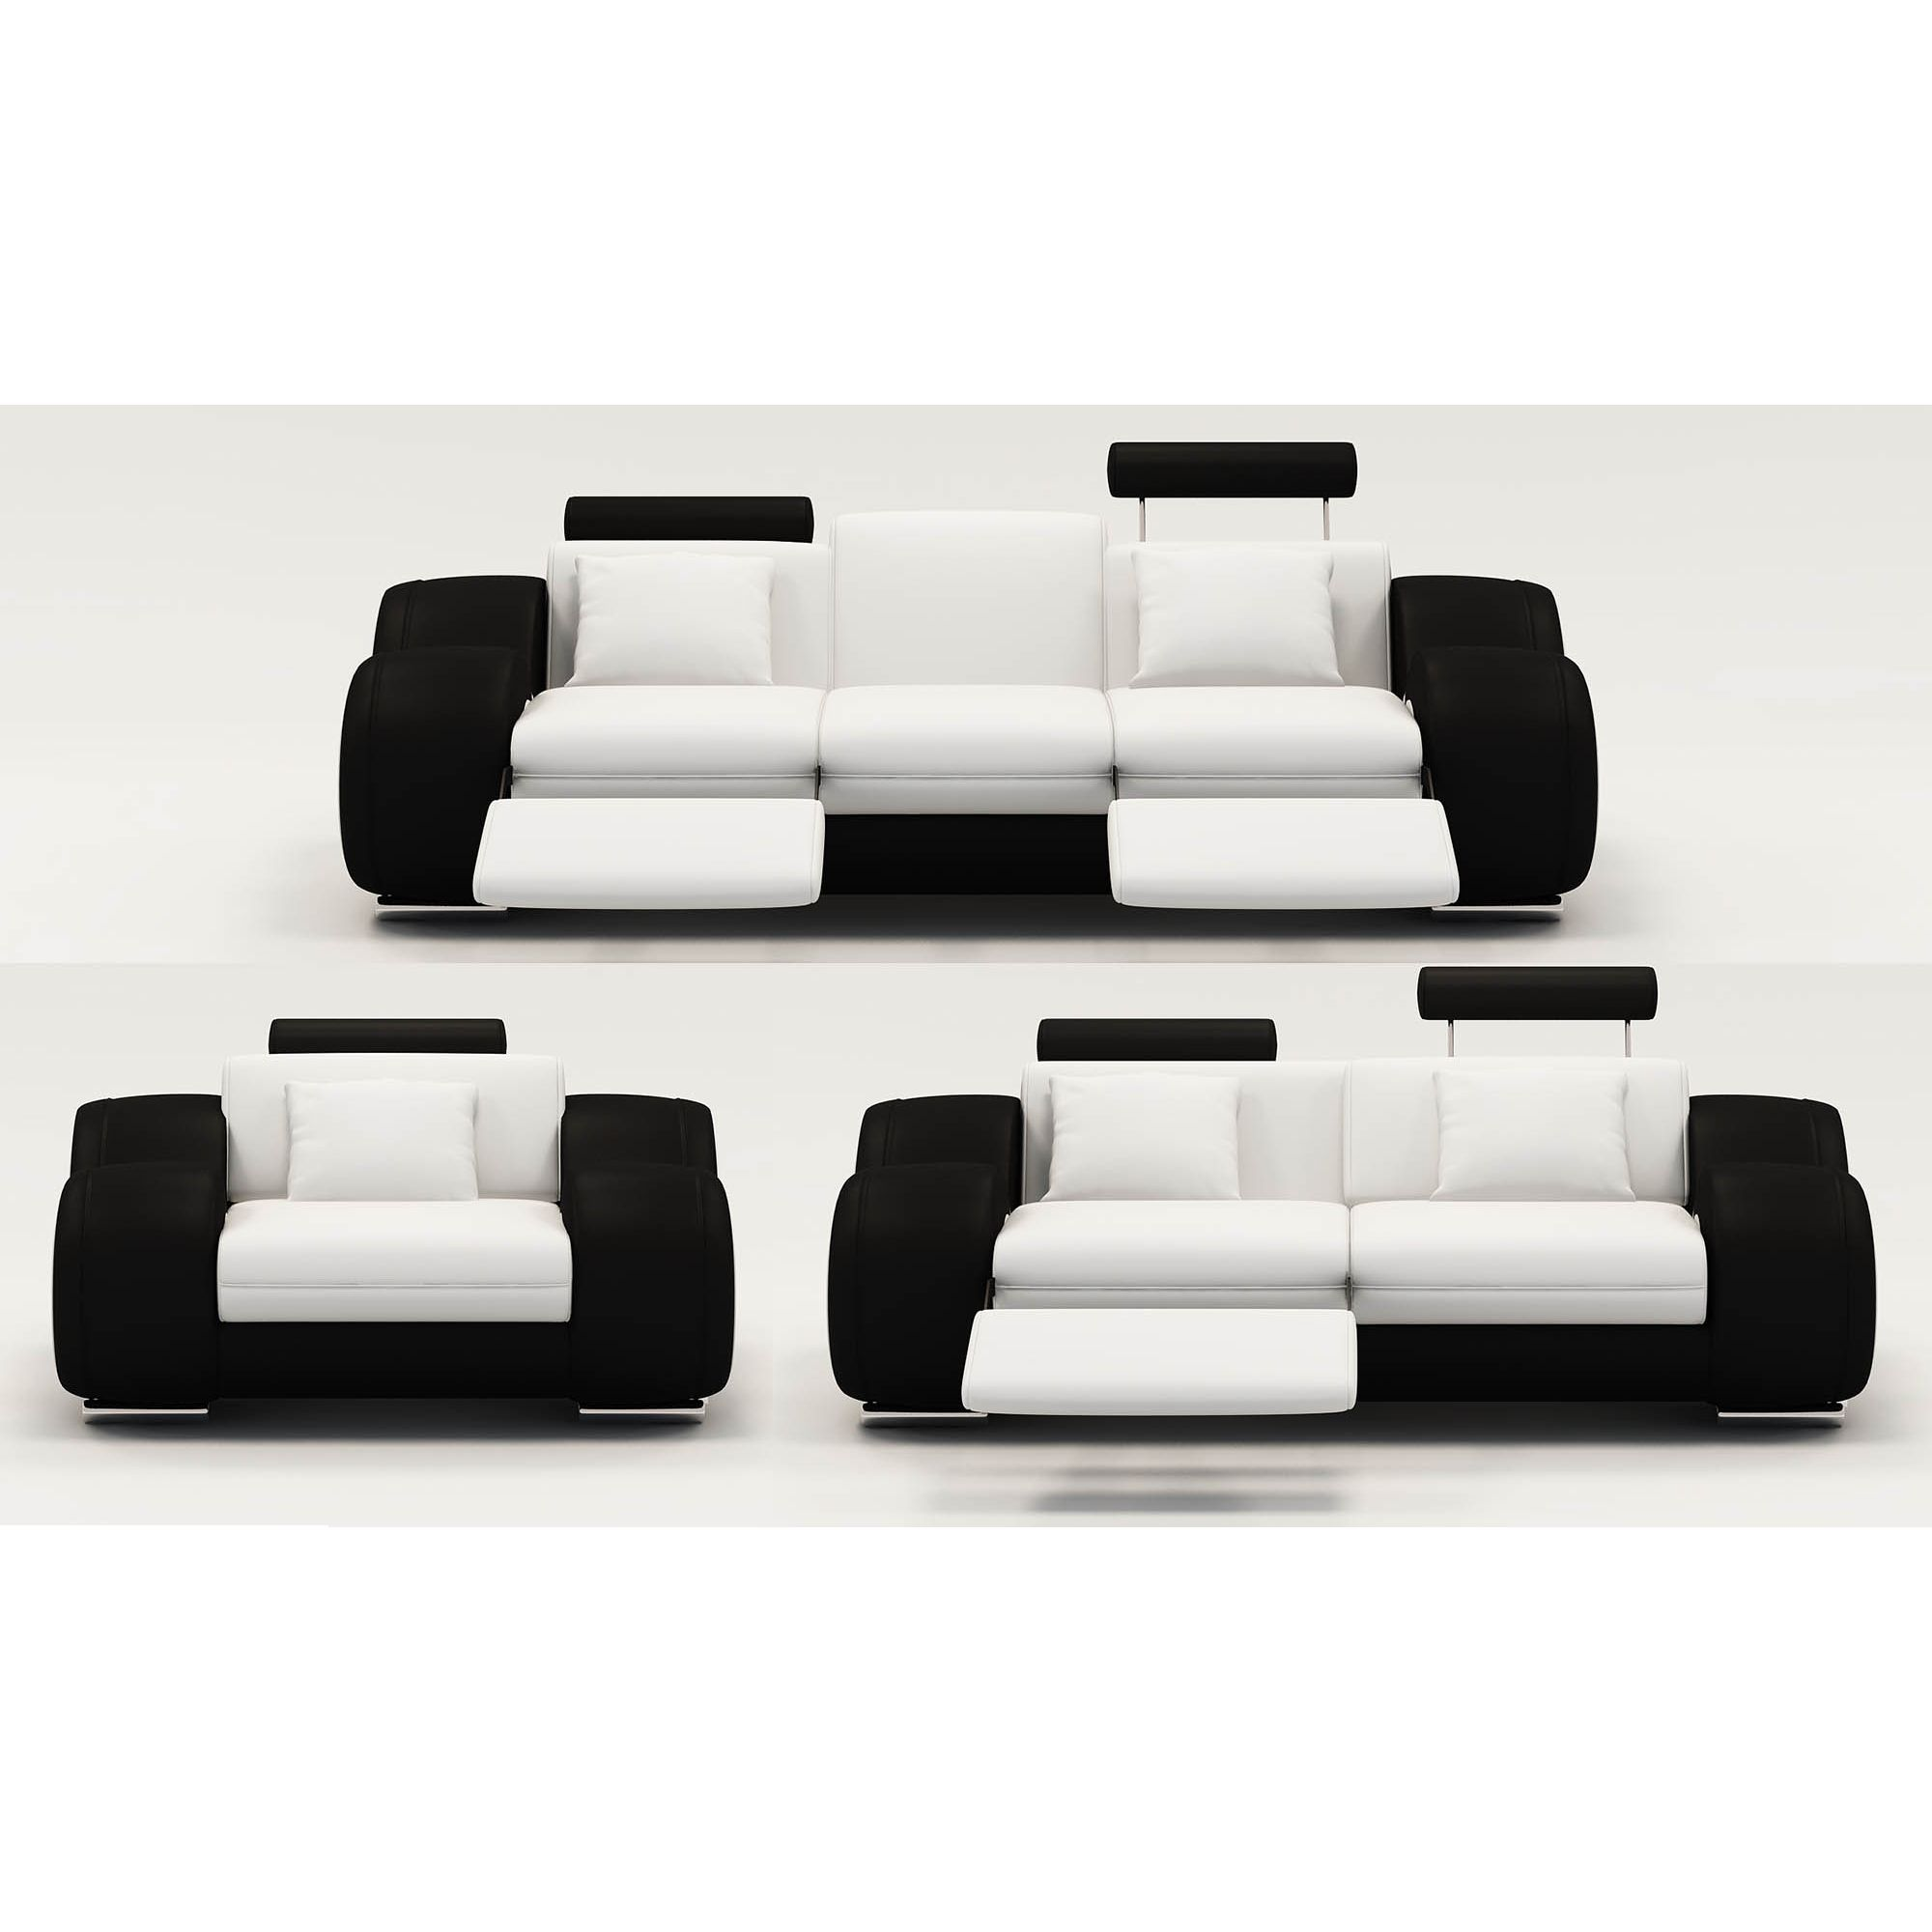 Deco in paris ensemble canape relax design 3 2 1 places - Canape cuir blanc relax ...